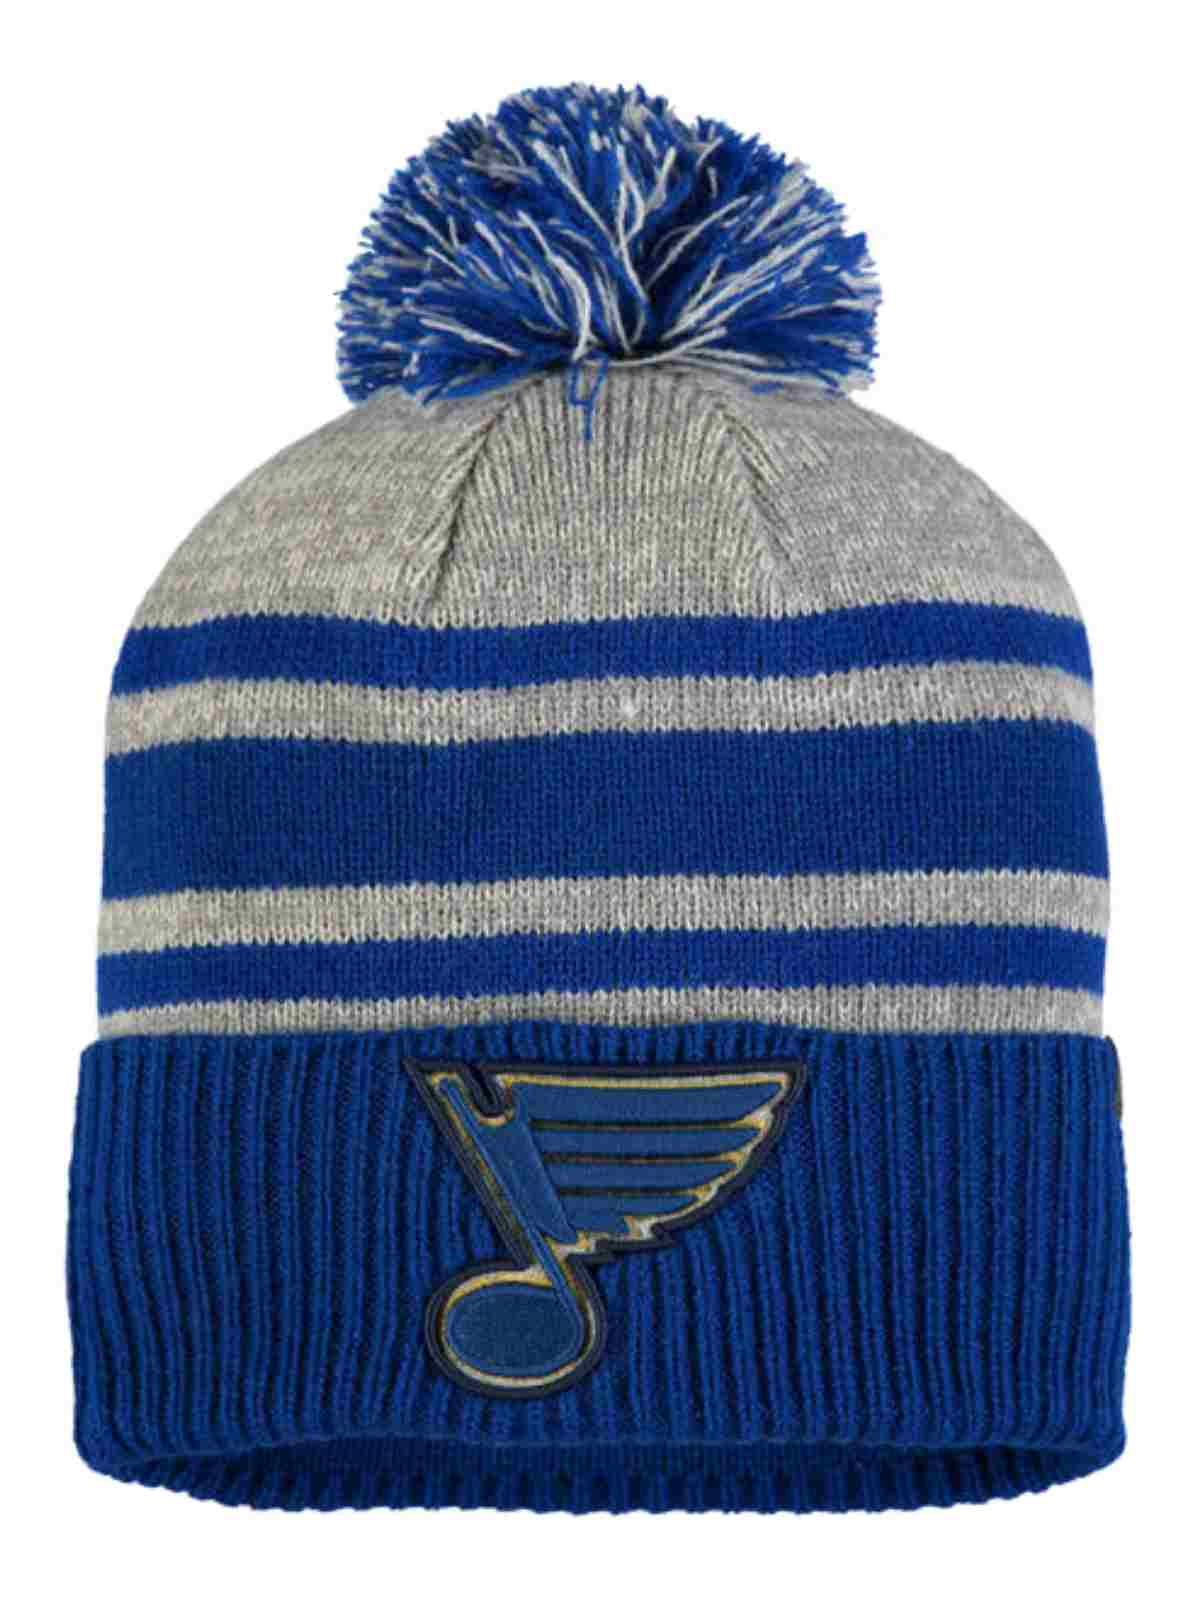 423ce6fb7dc892 St. Louis Blues Fanatics Royal Blue & Gray Cuffed Poofball Beanie Hat Cap